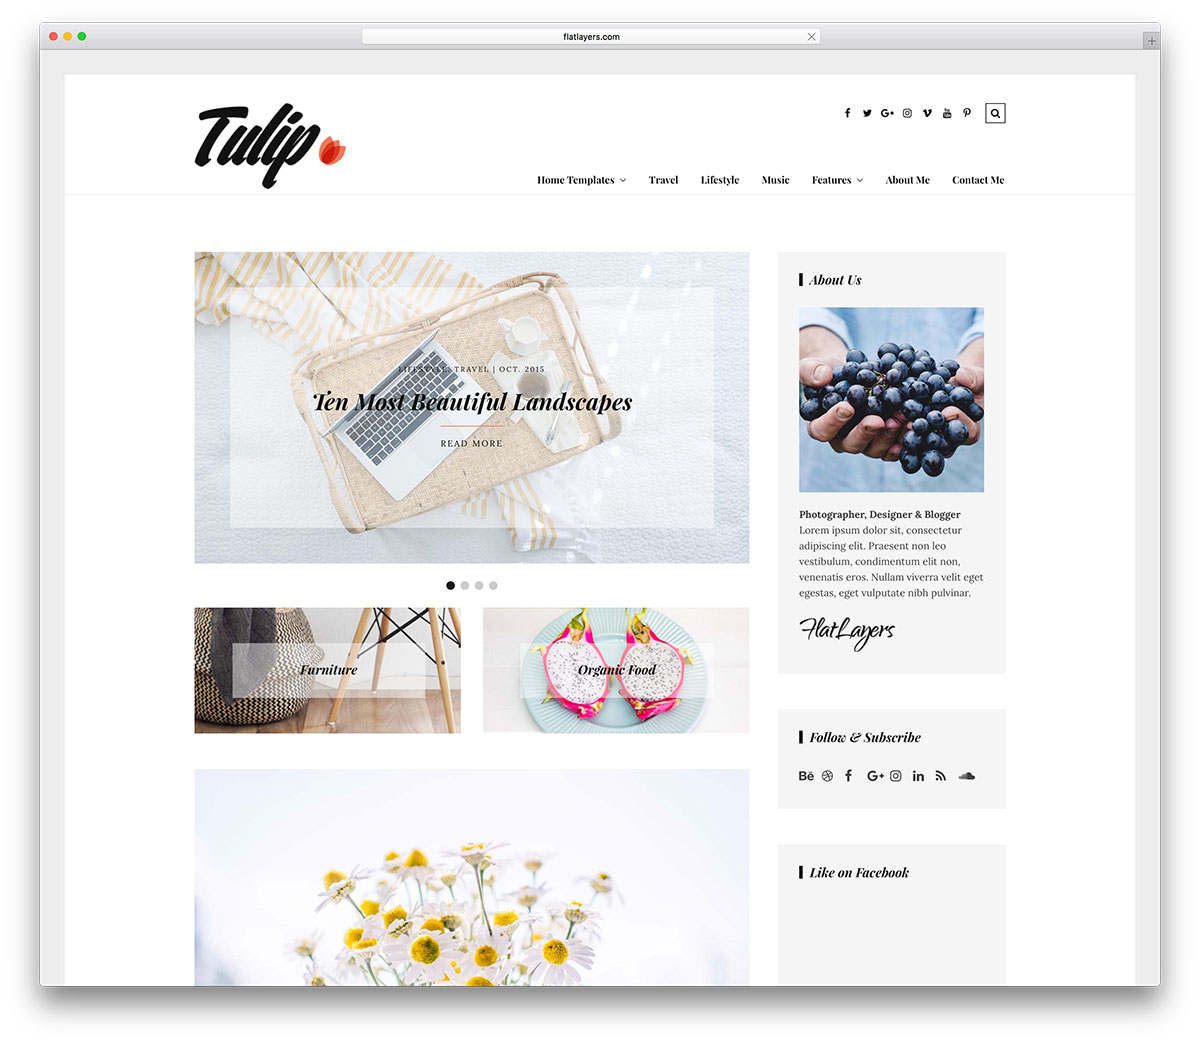 "tulip-minimal-blog-wordpress-theme"" width=""1200"" height=""1043"" data-lazy-srcset=""https://webypress.fr/wp-content/uploads/2018/12/1546046199_932_40-meilleurs-thèmes-WordPress-Blog-personnel-2018.jpg 1200w, https://cdn.colorlib.com/wp/wp-content/uploads/sites/2/tulip-minimal-blog-wordpress-theme-300x261.jpg 300w, https://cdn.colorlib.com/wp/wp-content/uploads/sites/2/tulip-minimal-blog-wordpress-theme-768x668.jpg 768w, https://cdn.colorlib.com/wp/wp-content/uploads/sites/2/tulip-minimal-blog-wordpress-theme-1024x890.jpg 1024w"" data-lazy-sizes=""(max-width: 1200px) 100vw, 1200px"" data-lazy-src=""https://webypress.fr/wp-content/uploads/2018/12/1546046199_932_40-meilleurs-thèmes-WordPress-Blog-personnel-2018.jpg?is-pending-load=1"" srcset=""data:image/gif;base64,R0lGODlhAQABAIAAAAAAAP///yH5BAEAAAAALAAAAAABAAEAAAIBRAA7""/></p> <p><noscript><img class="